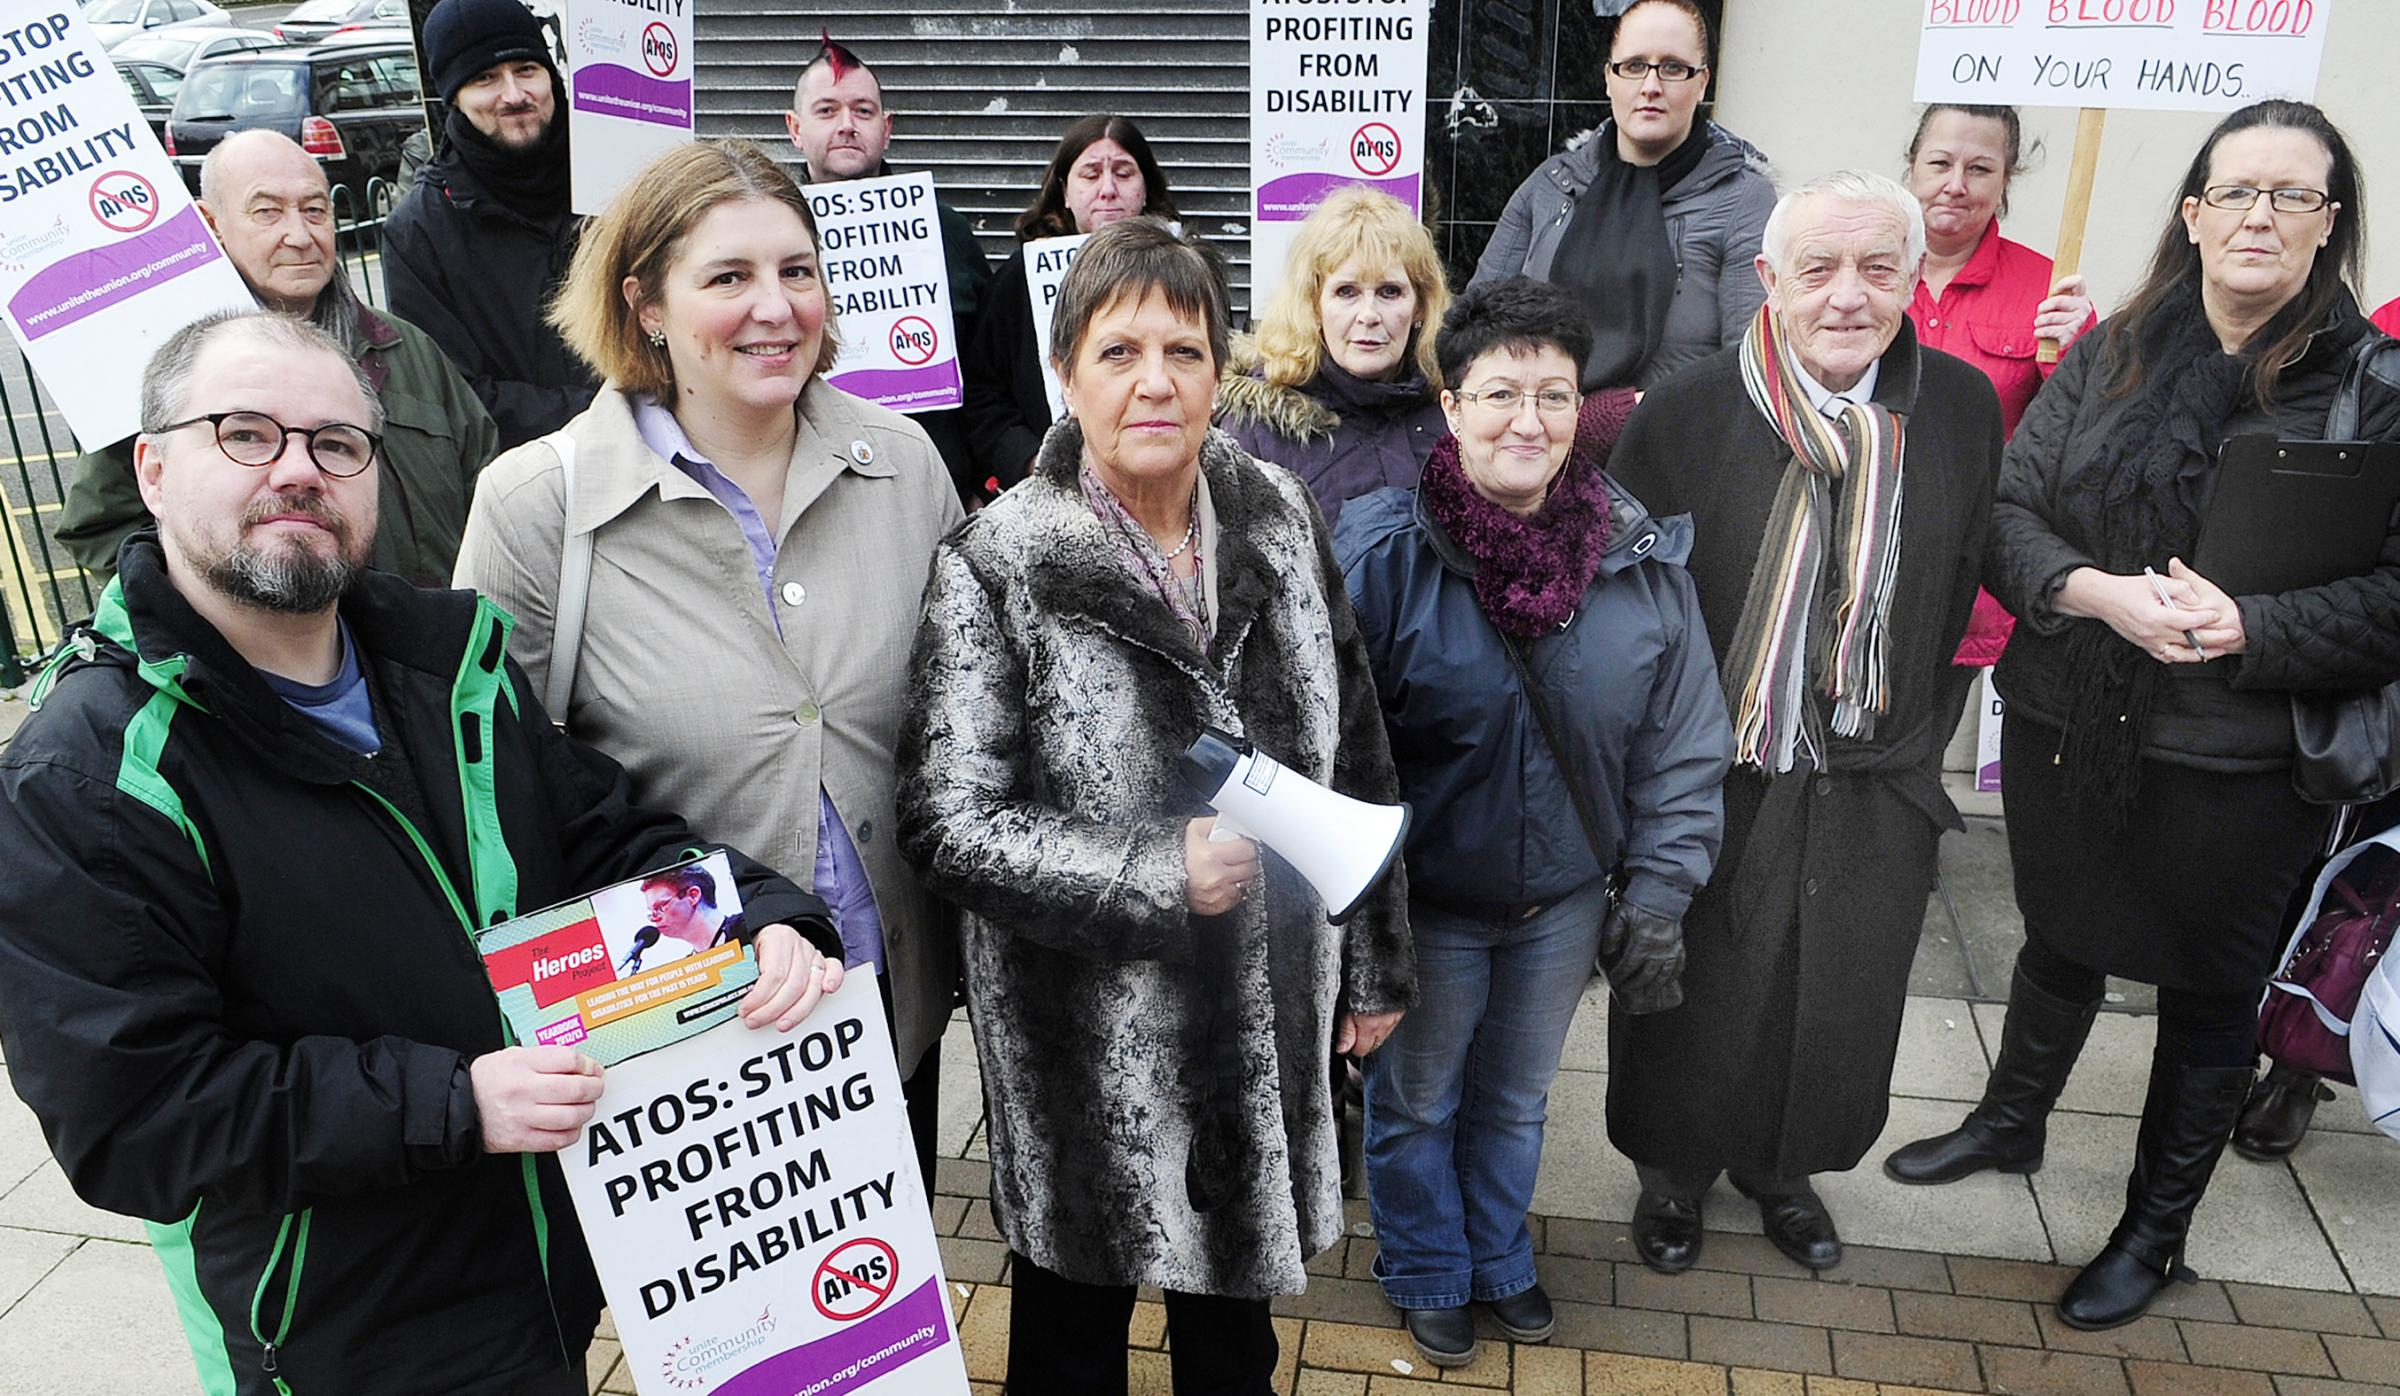 They don't give Atos: campaigners protest against disability assessors